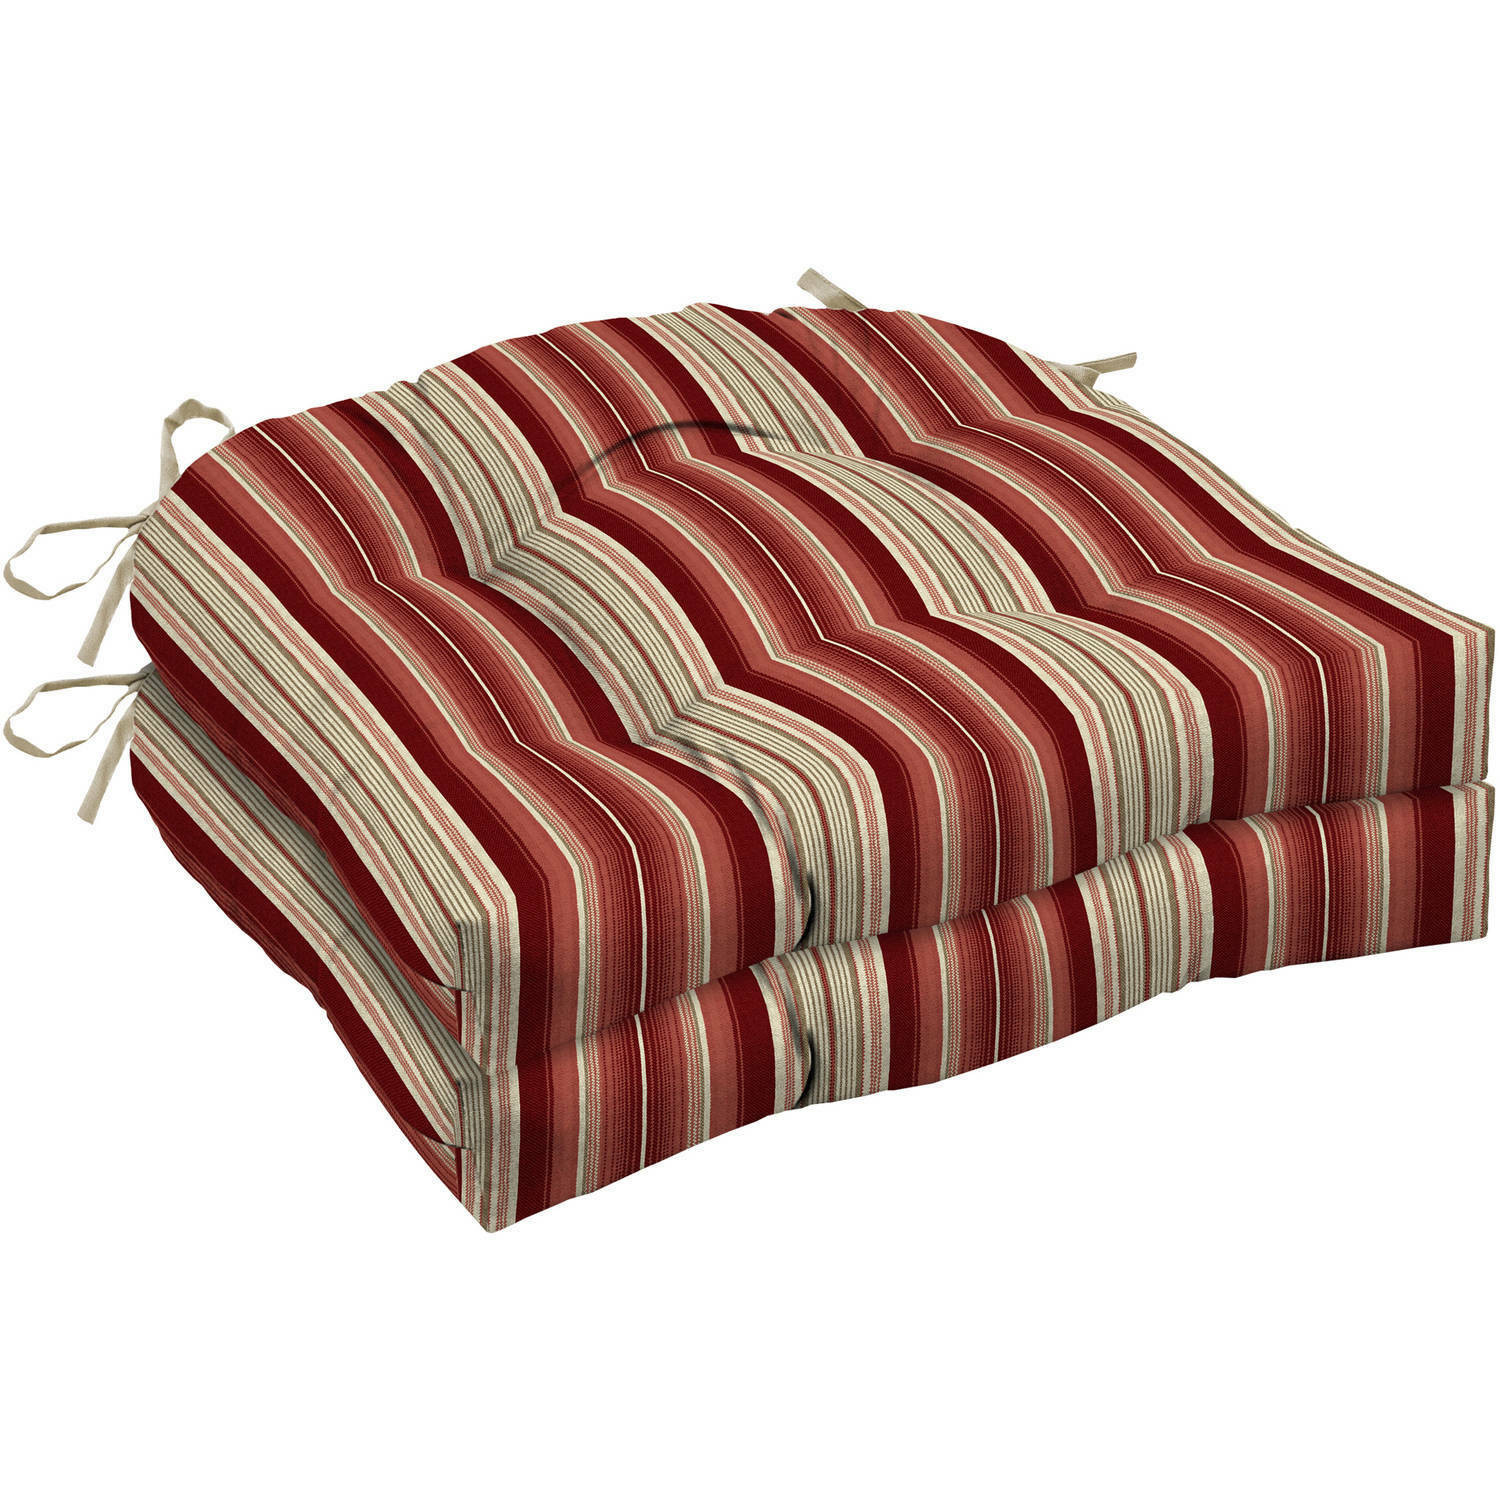 Best ideas about Better Homes And Gardens Patio Cushions . Save or Pin Better Homes and Gardens Seat Cushion Outdoor Patio Wicker Now.